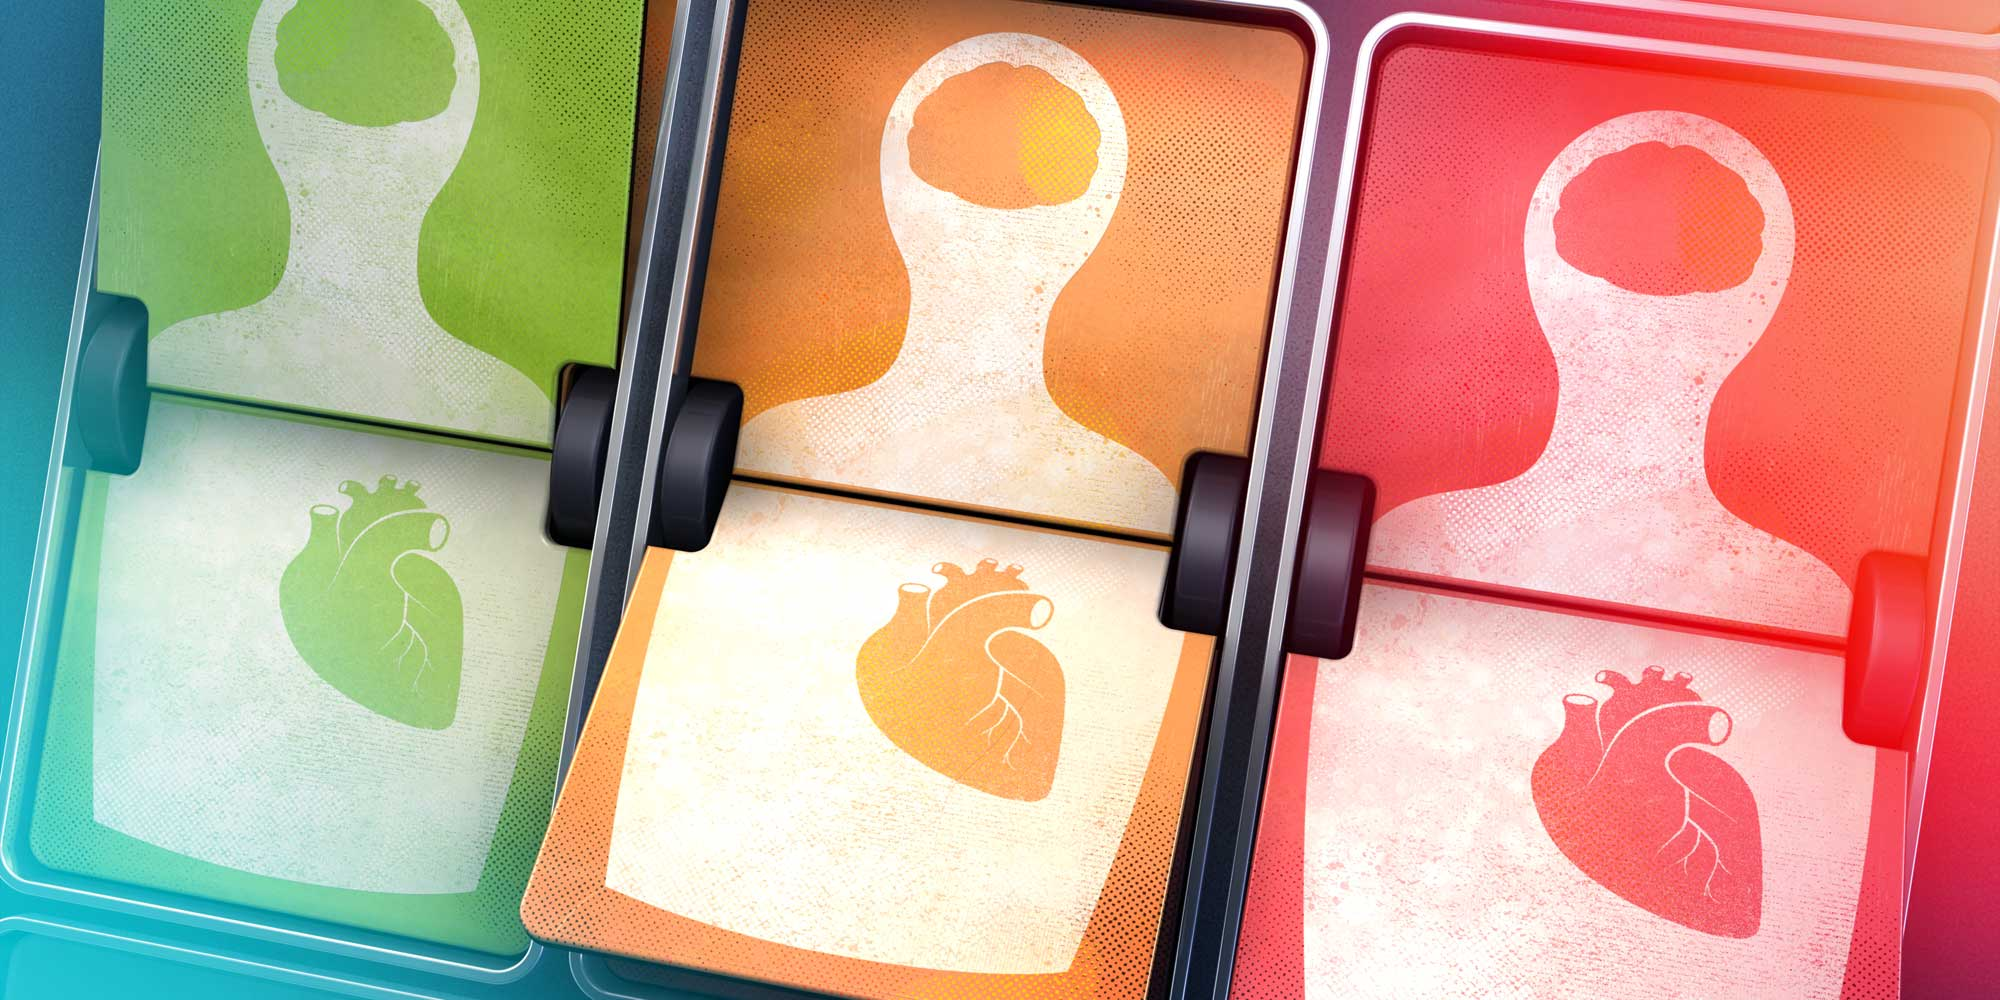 What's new in cardiovascular disease risk assessment and